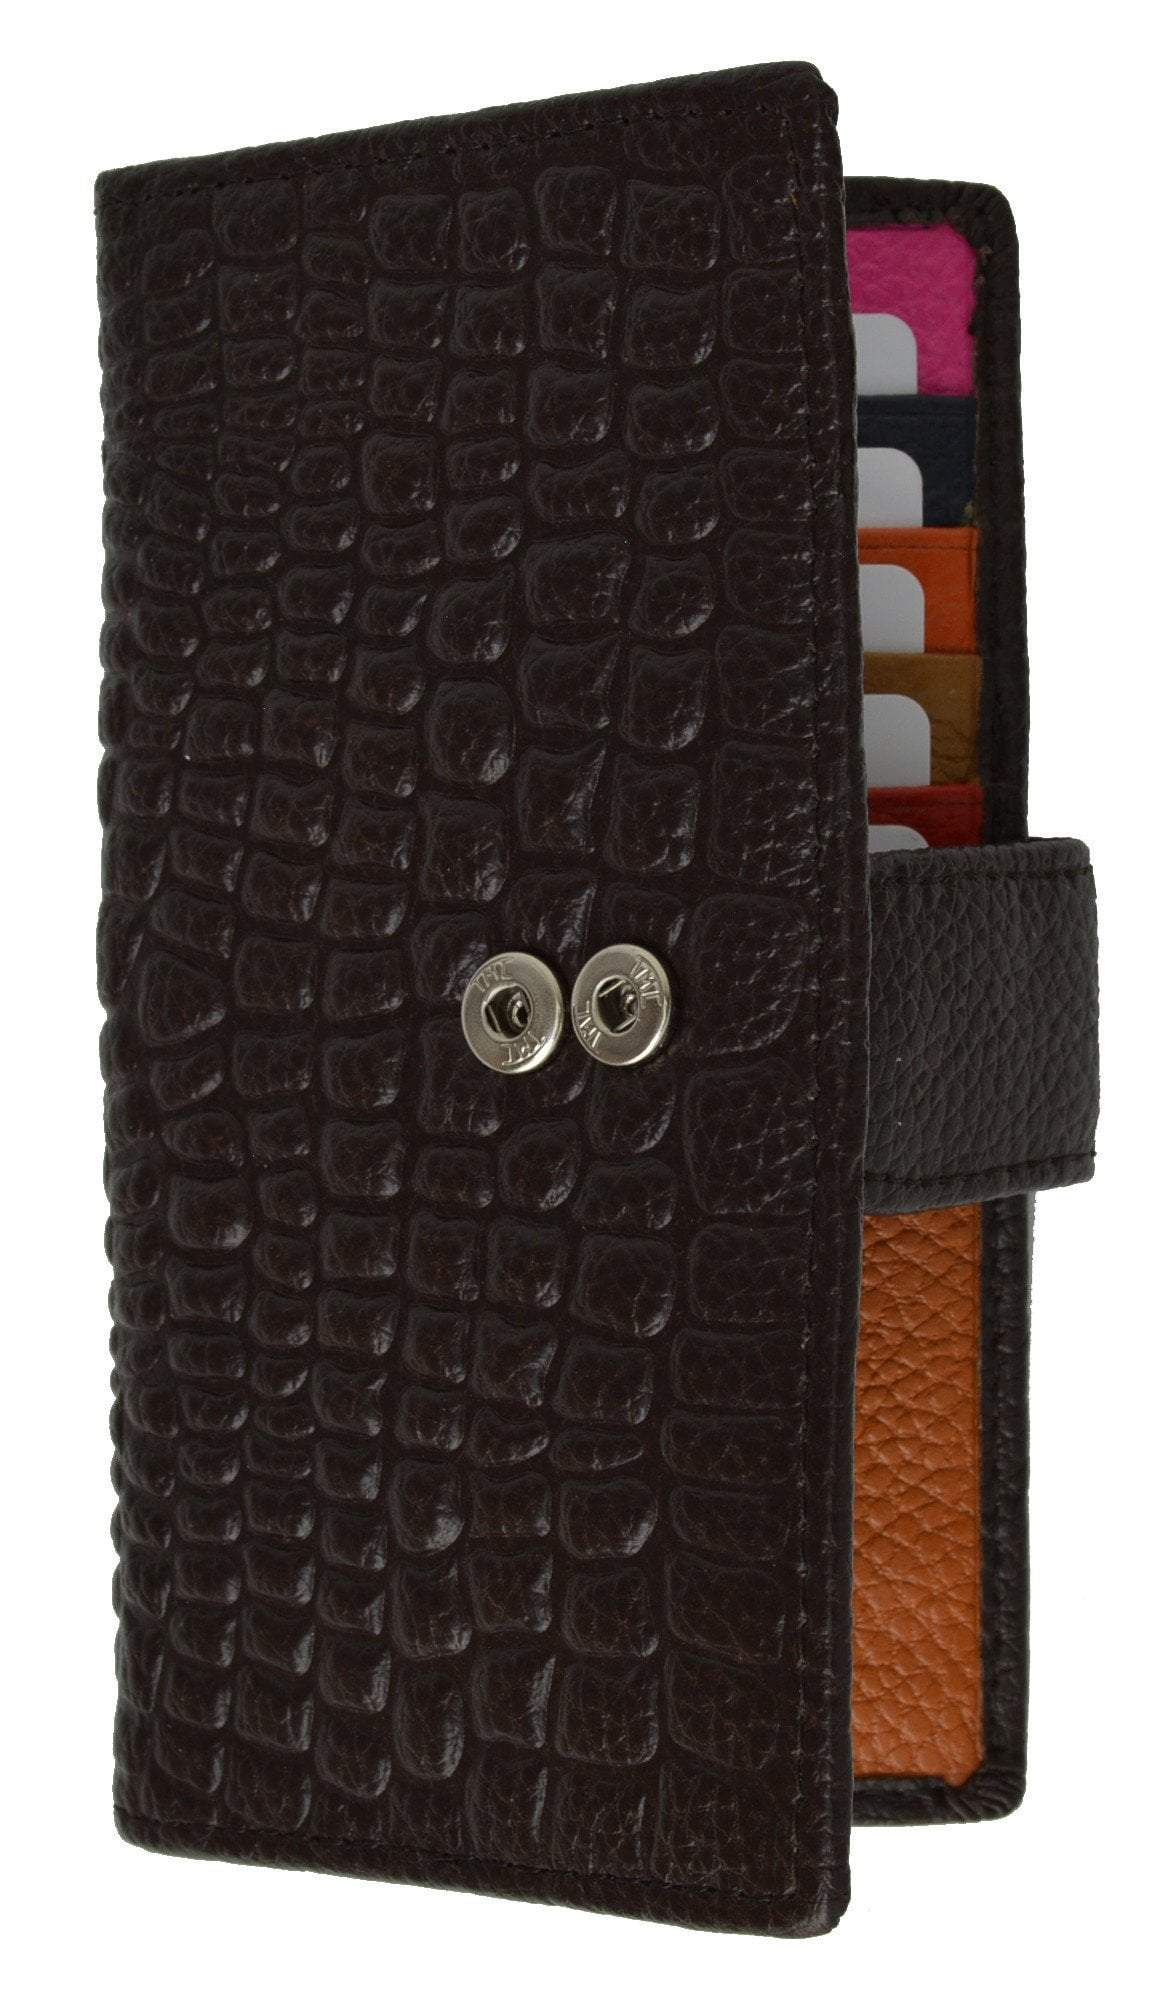 Slim Credit Card Holder New Fashion Croco Embossed Design with Snap Closure  118-268 (C)